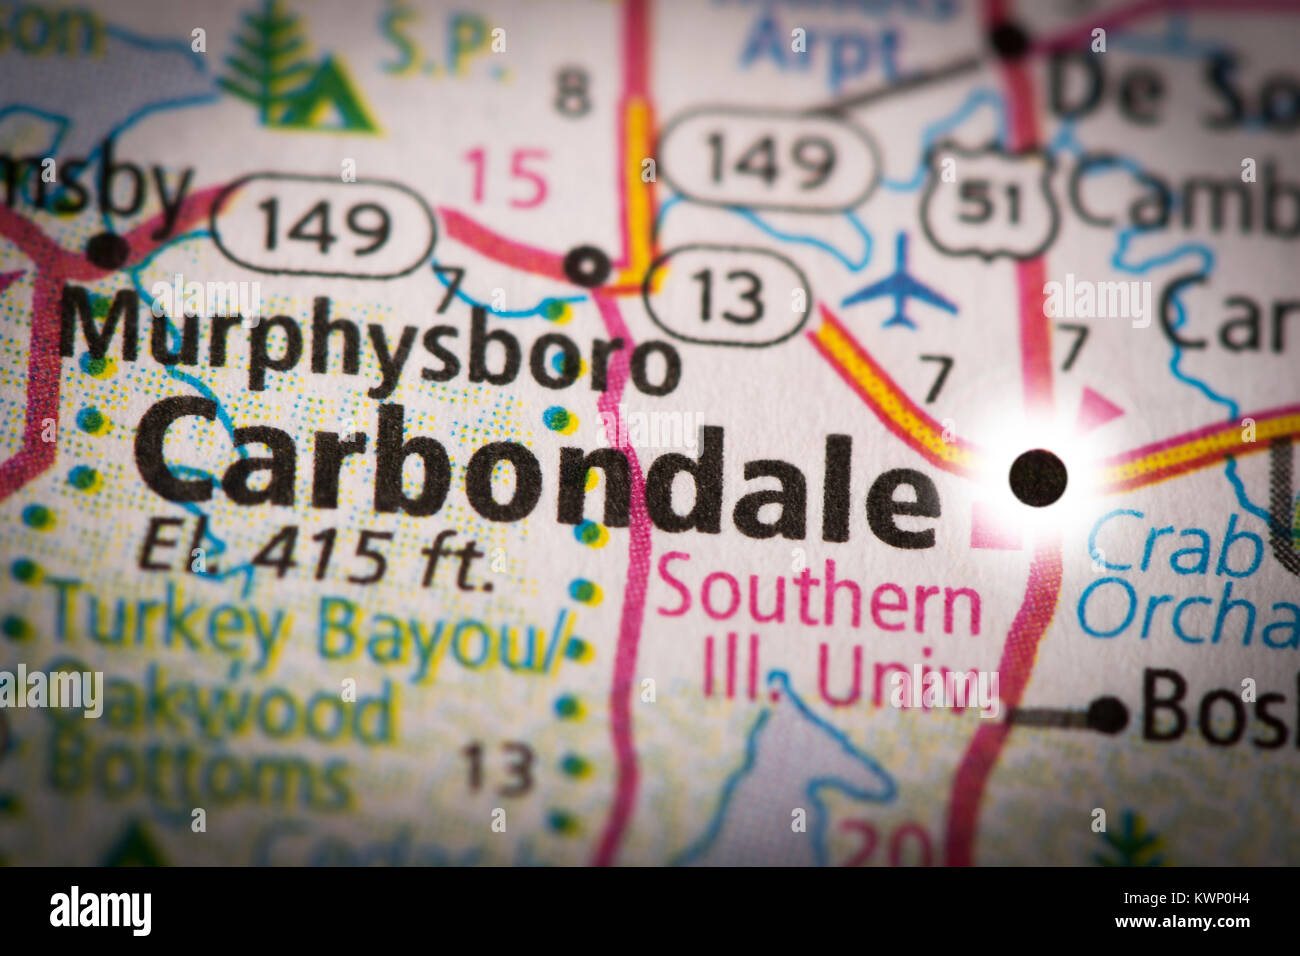 Closeup of Carbondale, IL on a road map of the United States with ...